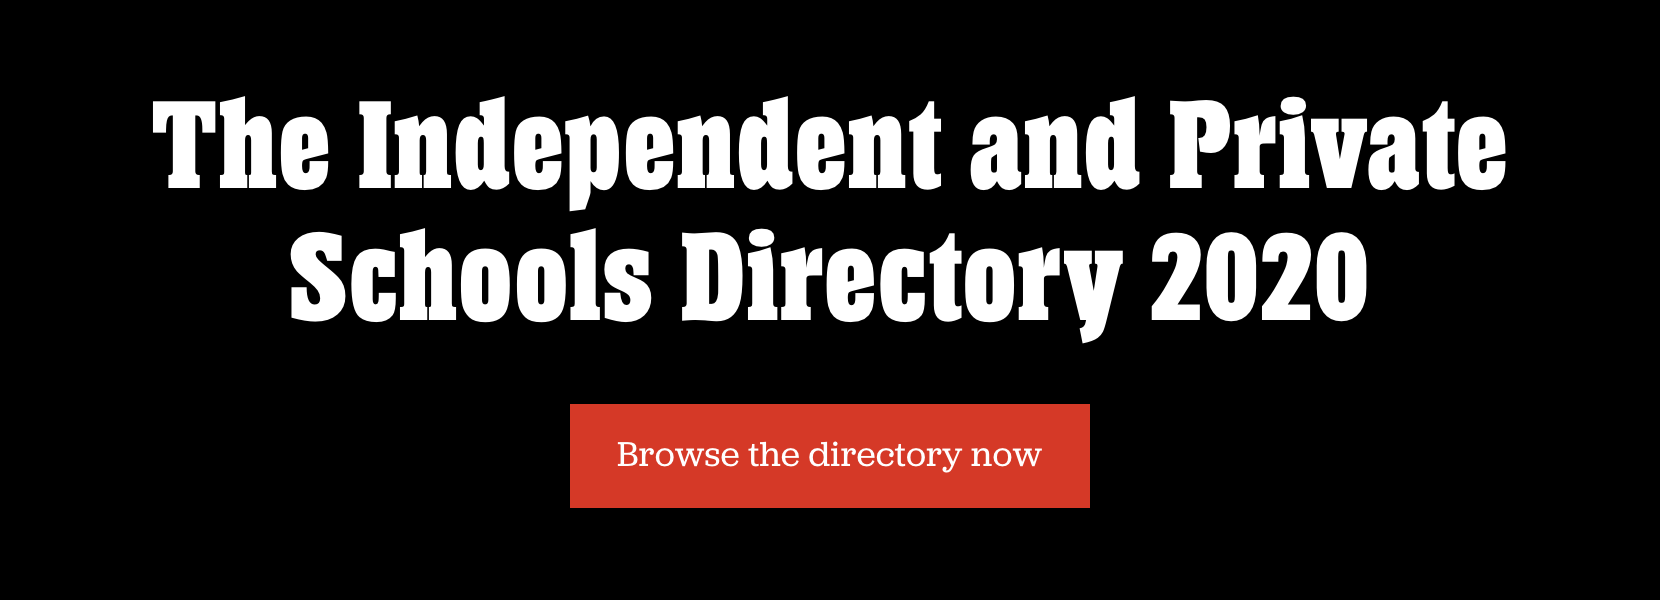 Browse the 2020 Private and Independent Schools Directory now